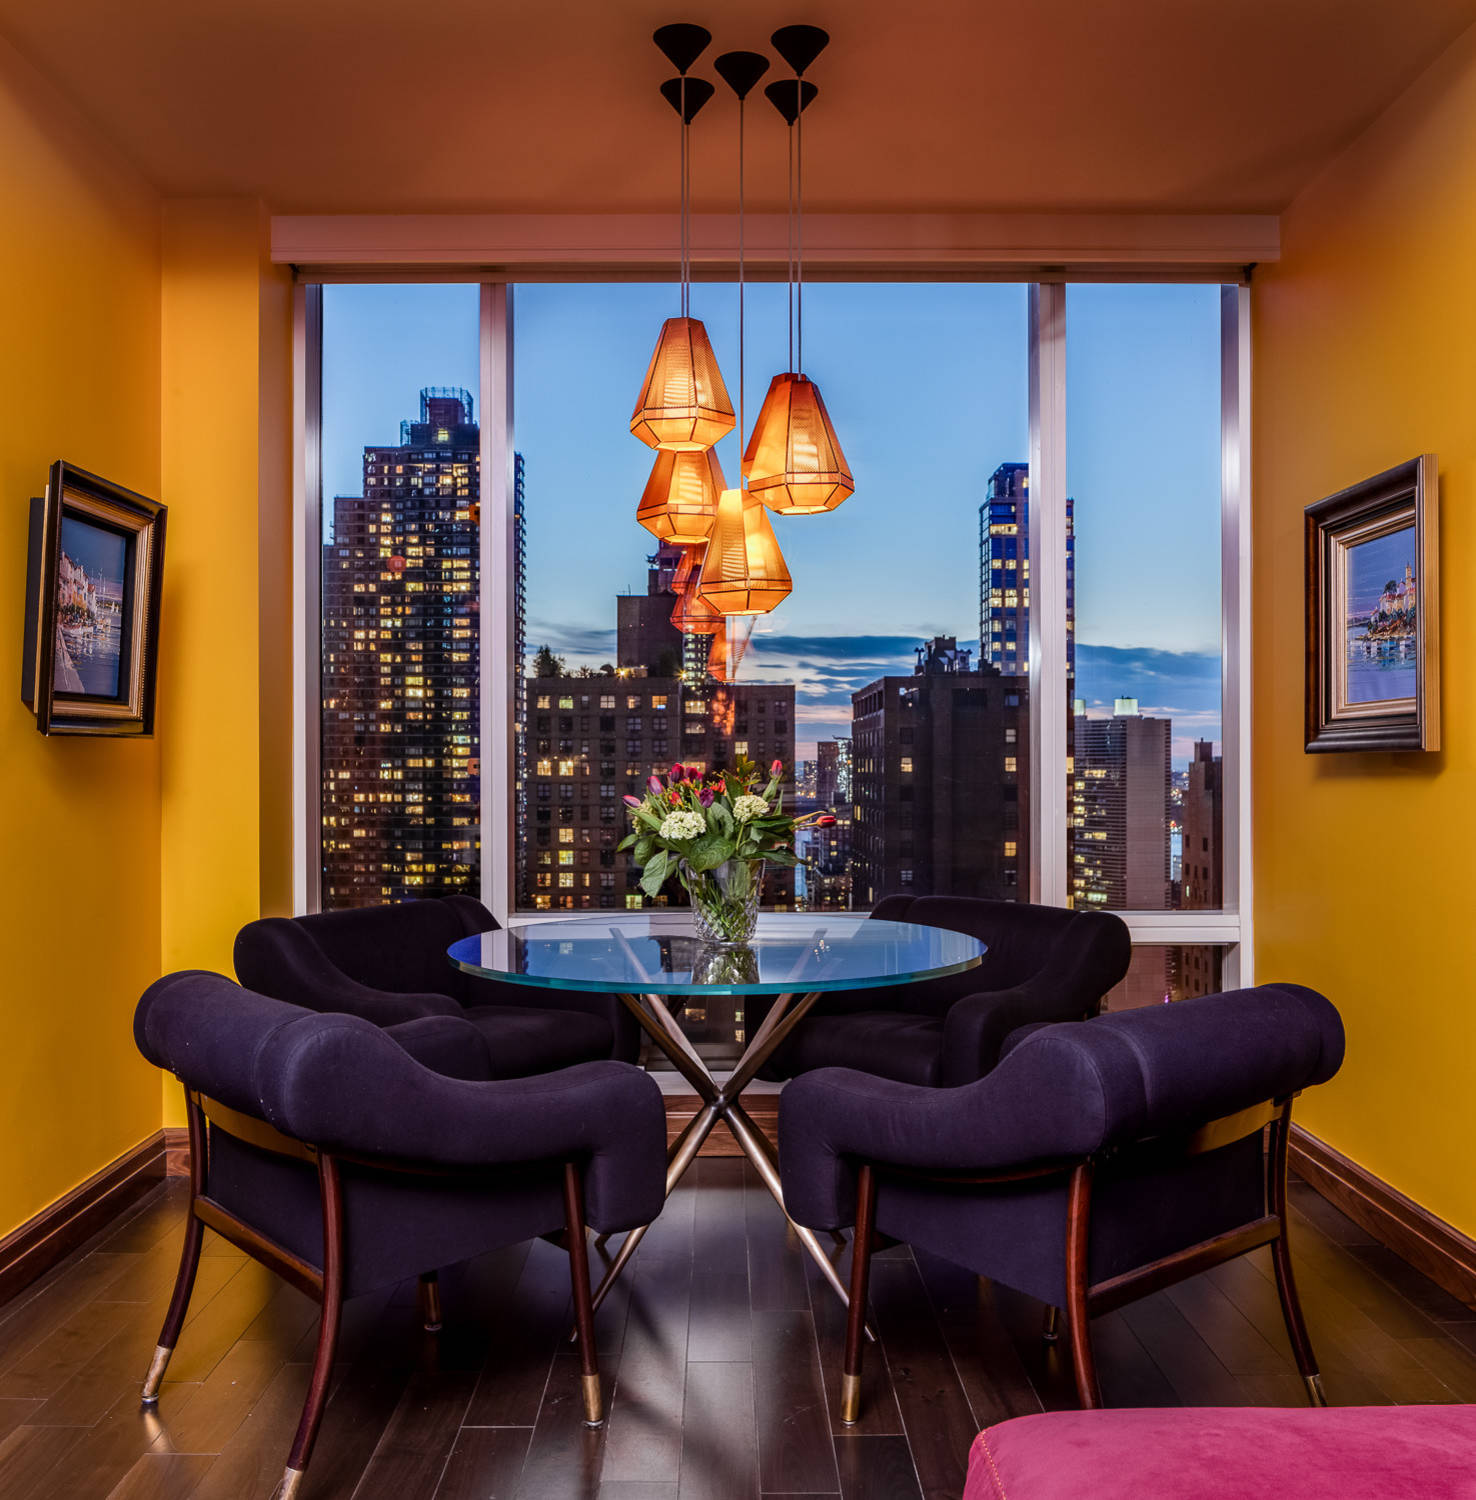 Stunningly beautiful dining room of apartment near Central Park in NYC with captivating views of the city and bright yellow walls